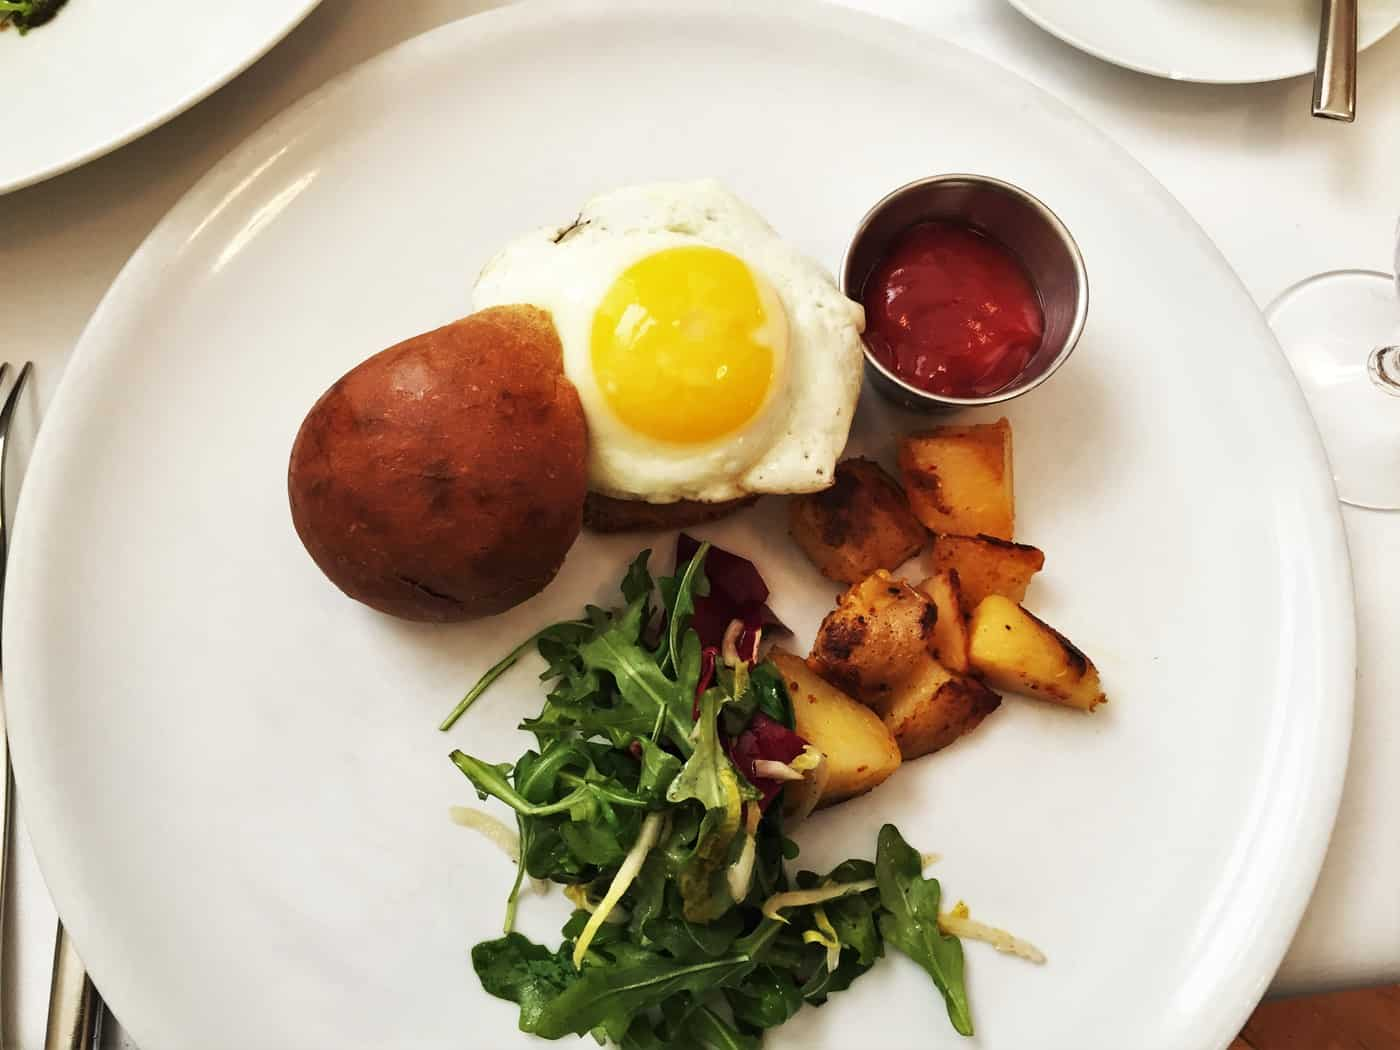 Review: Brunch at T.W. Food (Cambridge, MA) -Now Closed